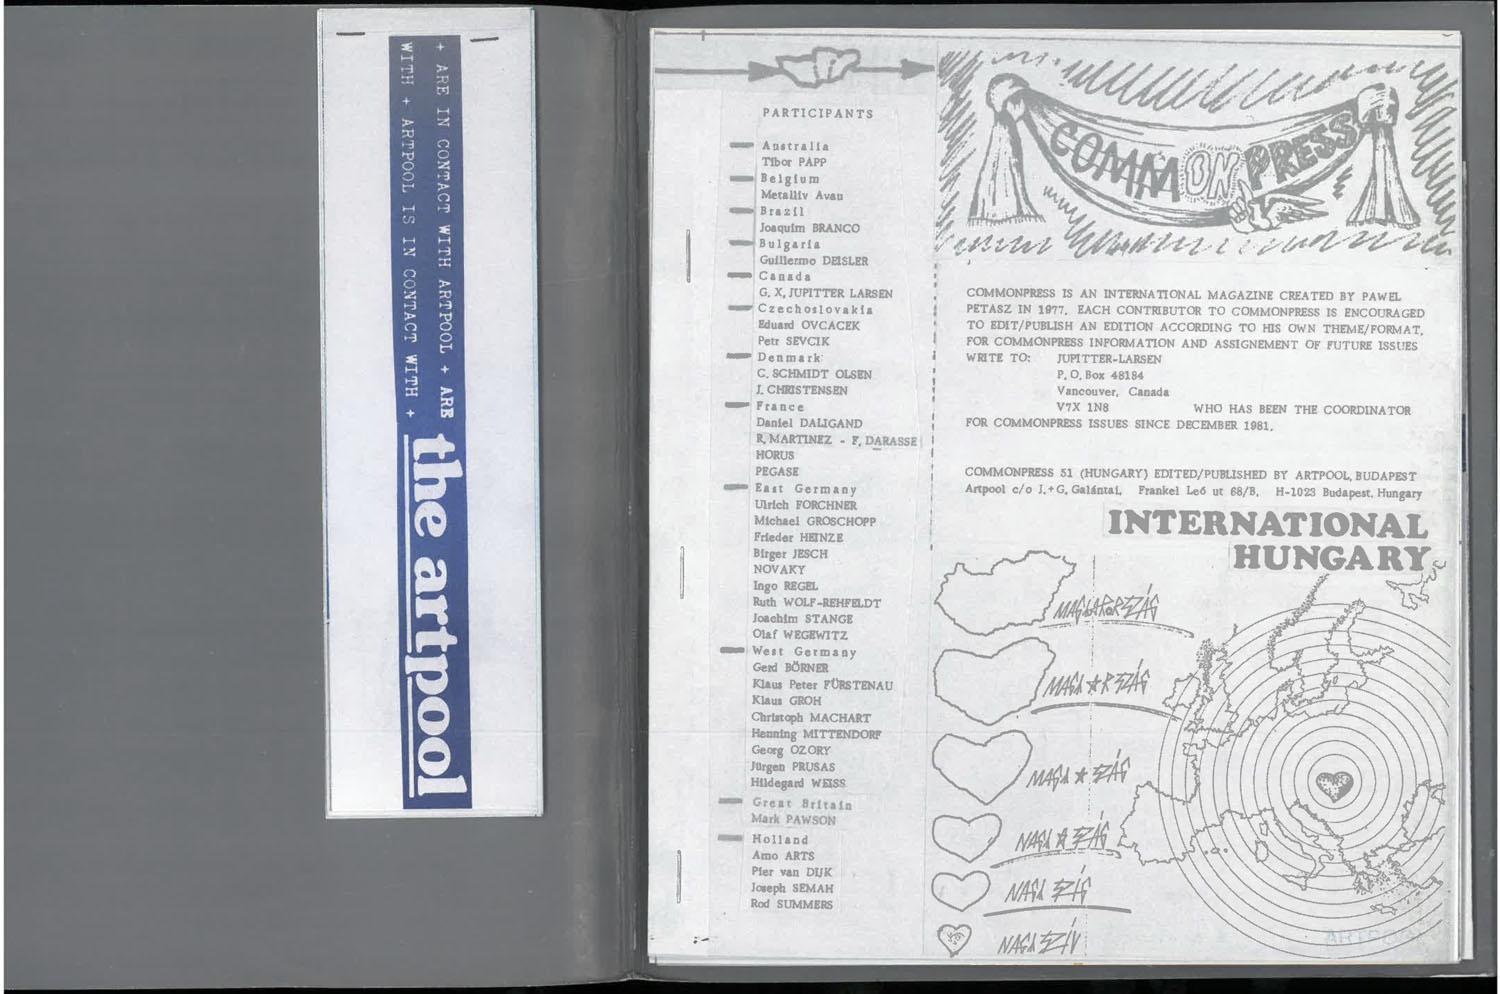 First page  of Commonpress 51 (Hungary issue), Artpool, 1984–1989 with the list of participants